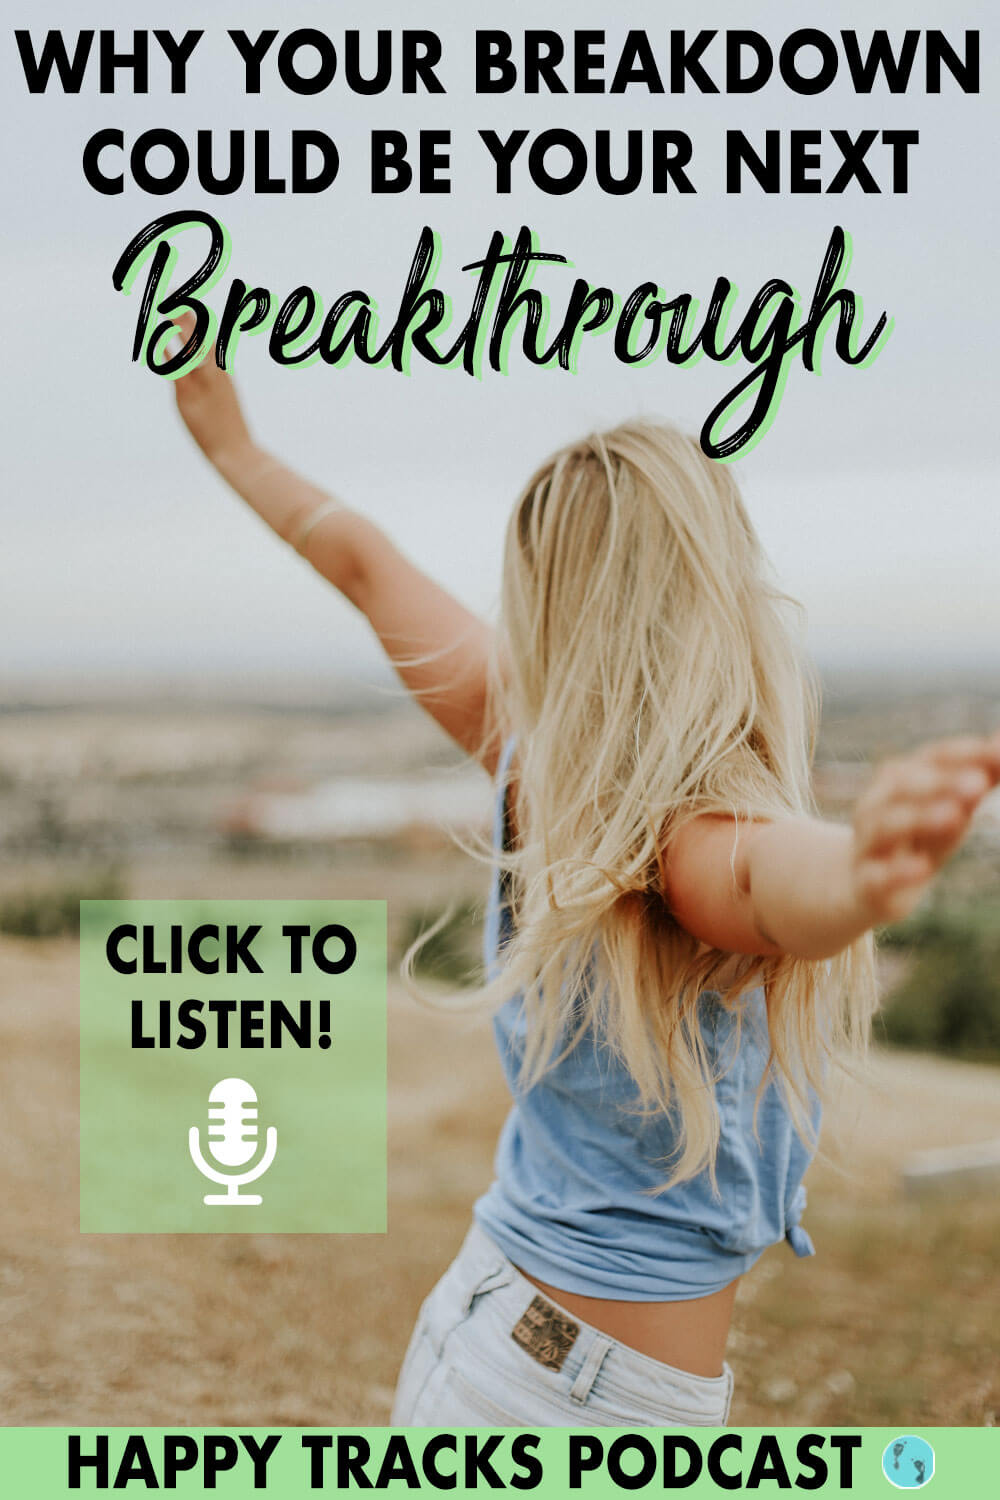 Your mental health is one of the most important things to take care of. When you're going through a breakdown, learn how you can reframe it to see it as an opportunity to breakthrough. Choose to see your breakdowns as something to work through for your well being as a form of self-love. Click to find out just how to do so!